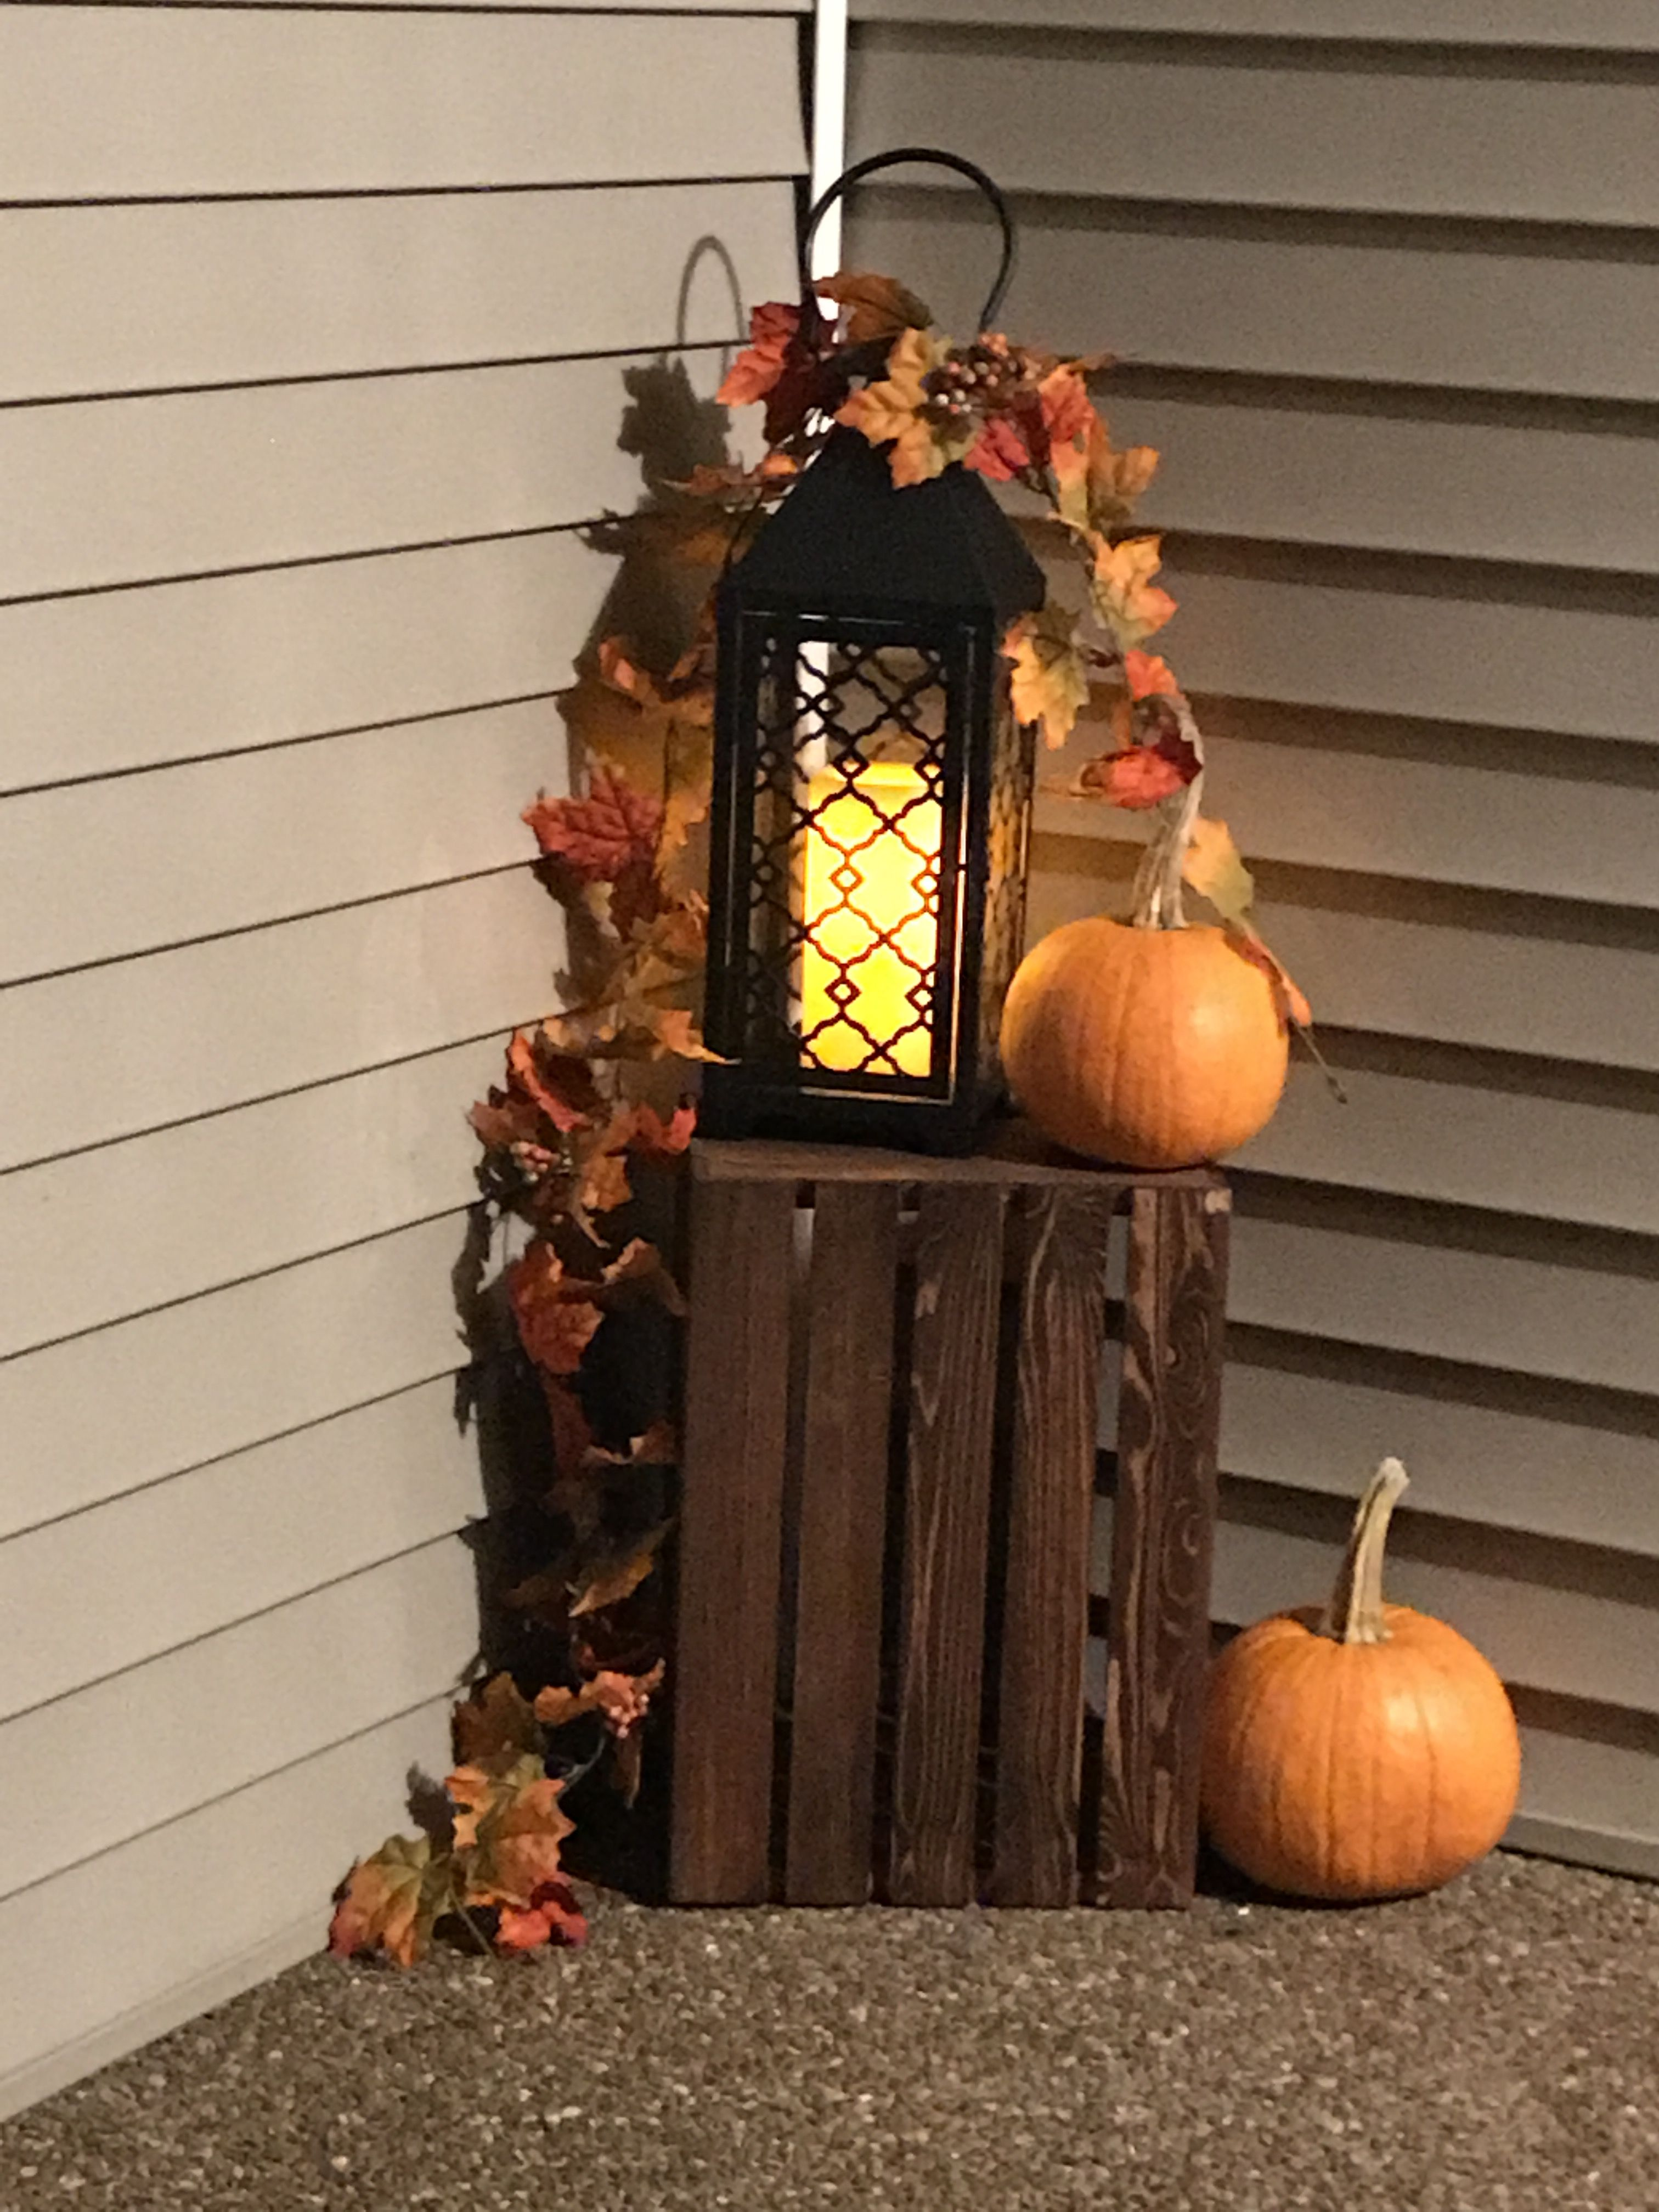 Pin by Anthony Coles on Front Porch ideas (With images